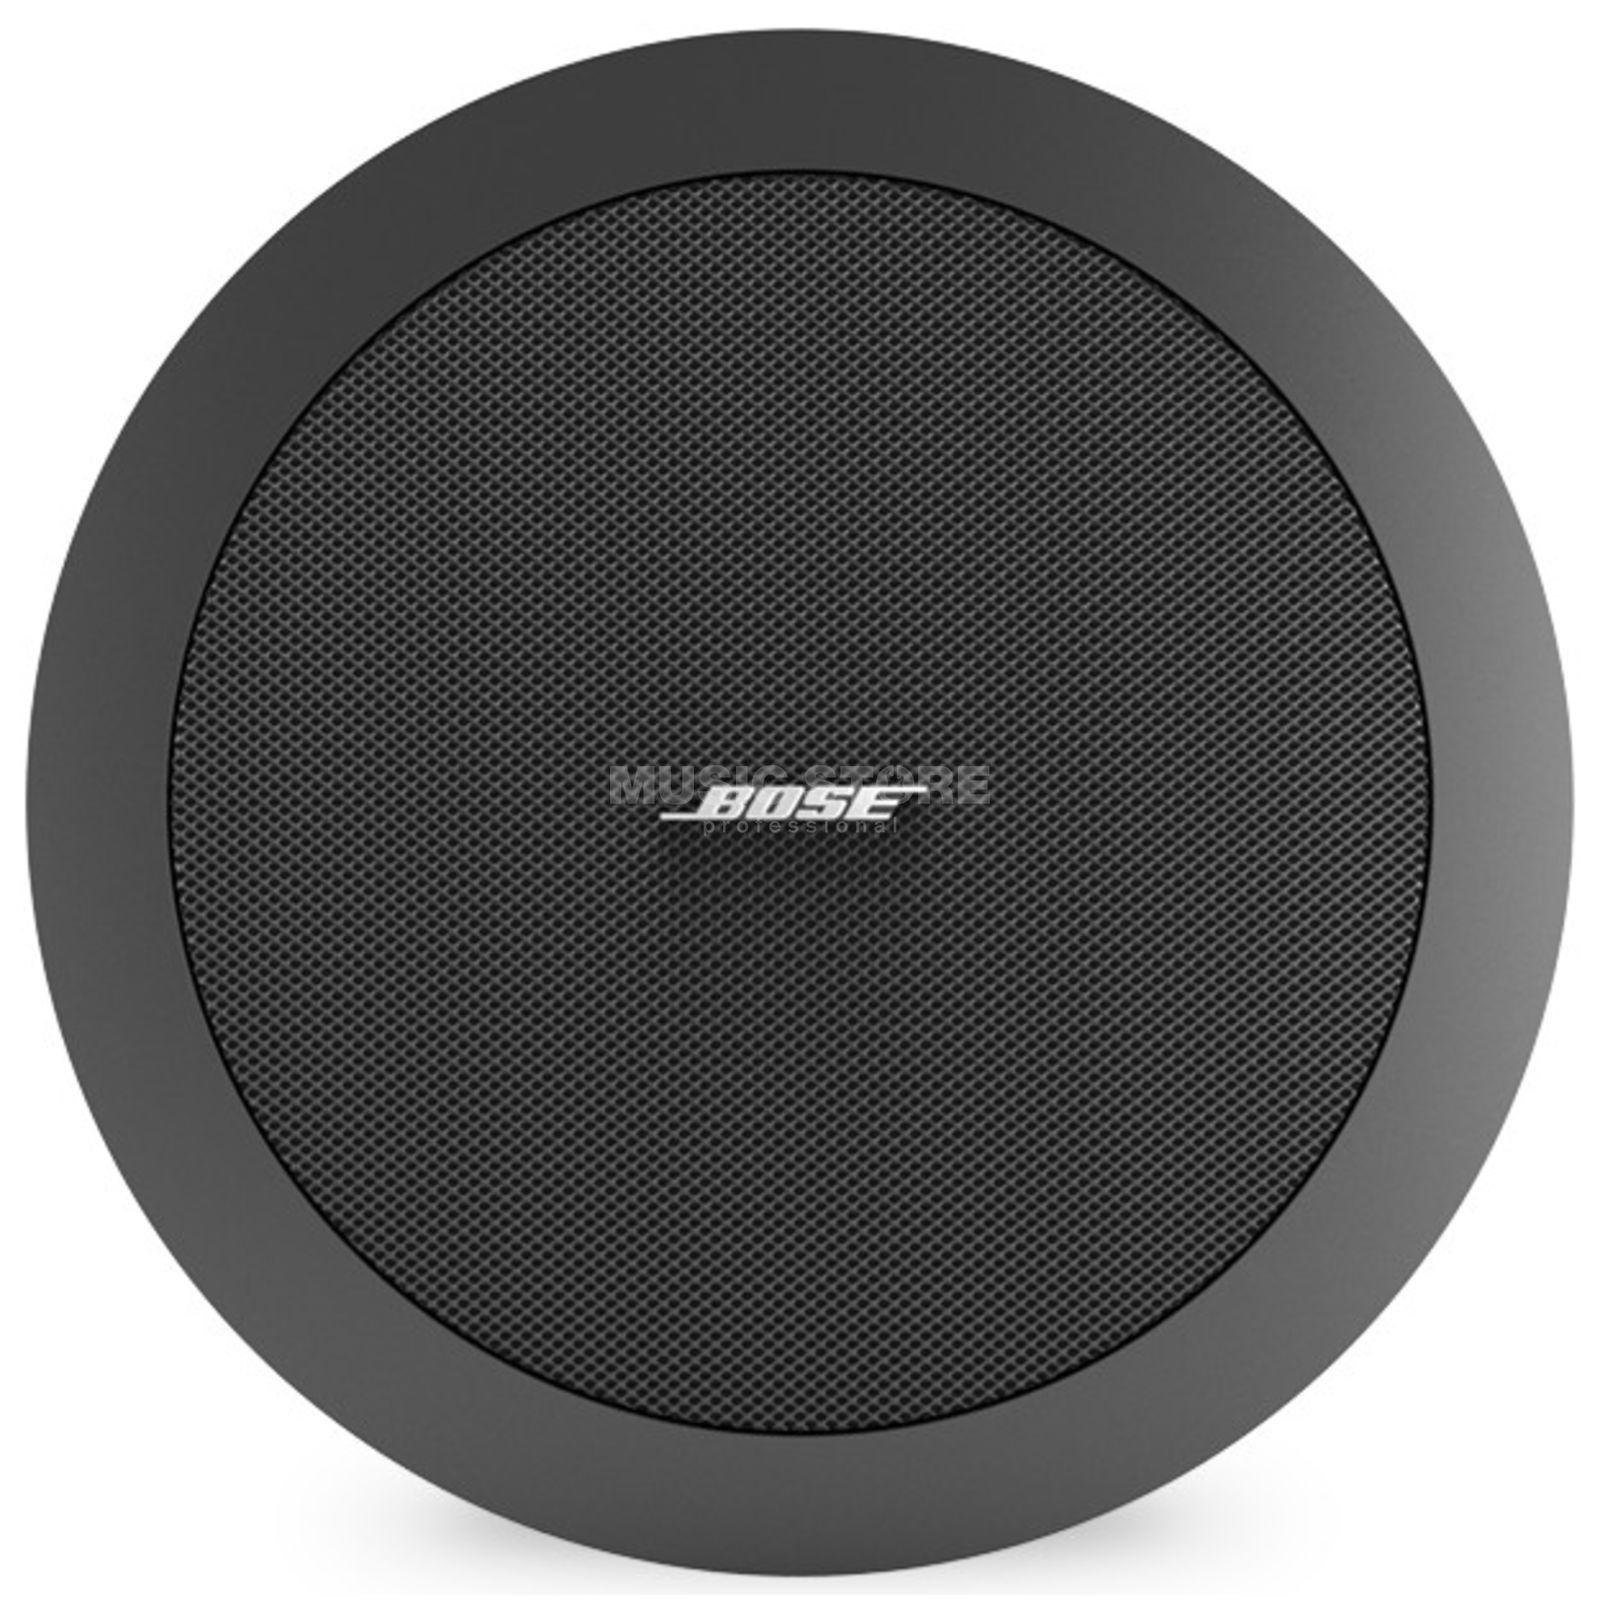 Bose FreeSpace DS16F BK Full Range Single Speaker 2,25 Product Image